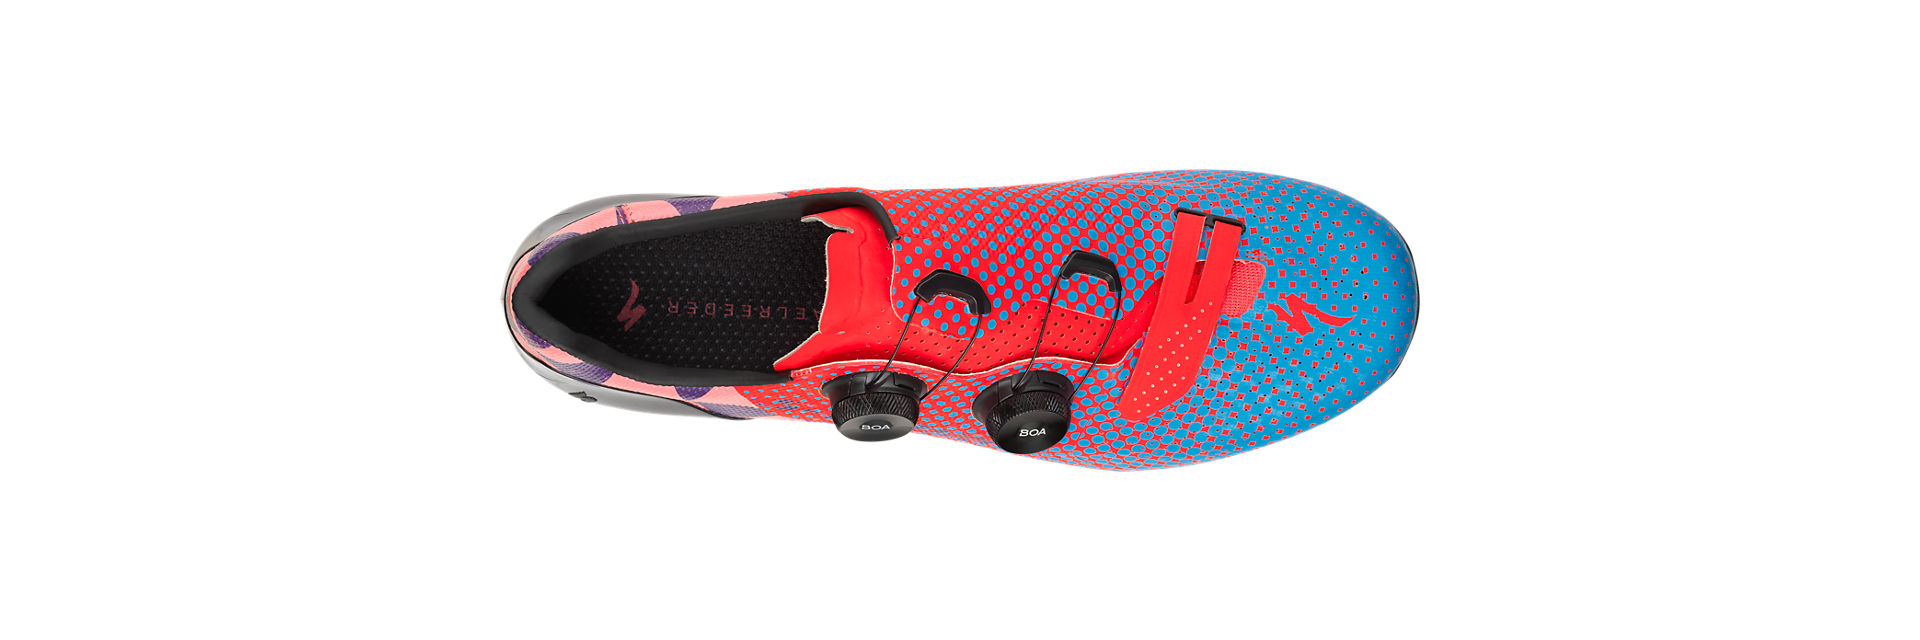 2019 Specialized S-Works 7 Road Shoes - Red Hook Crit LTD